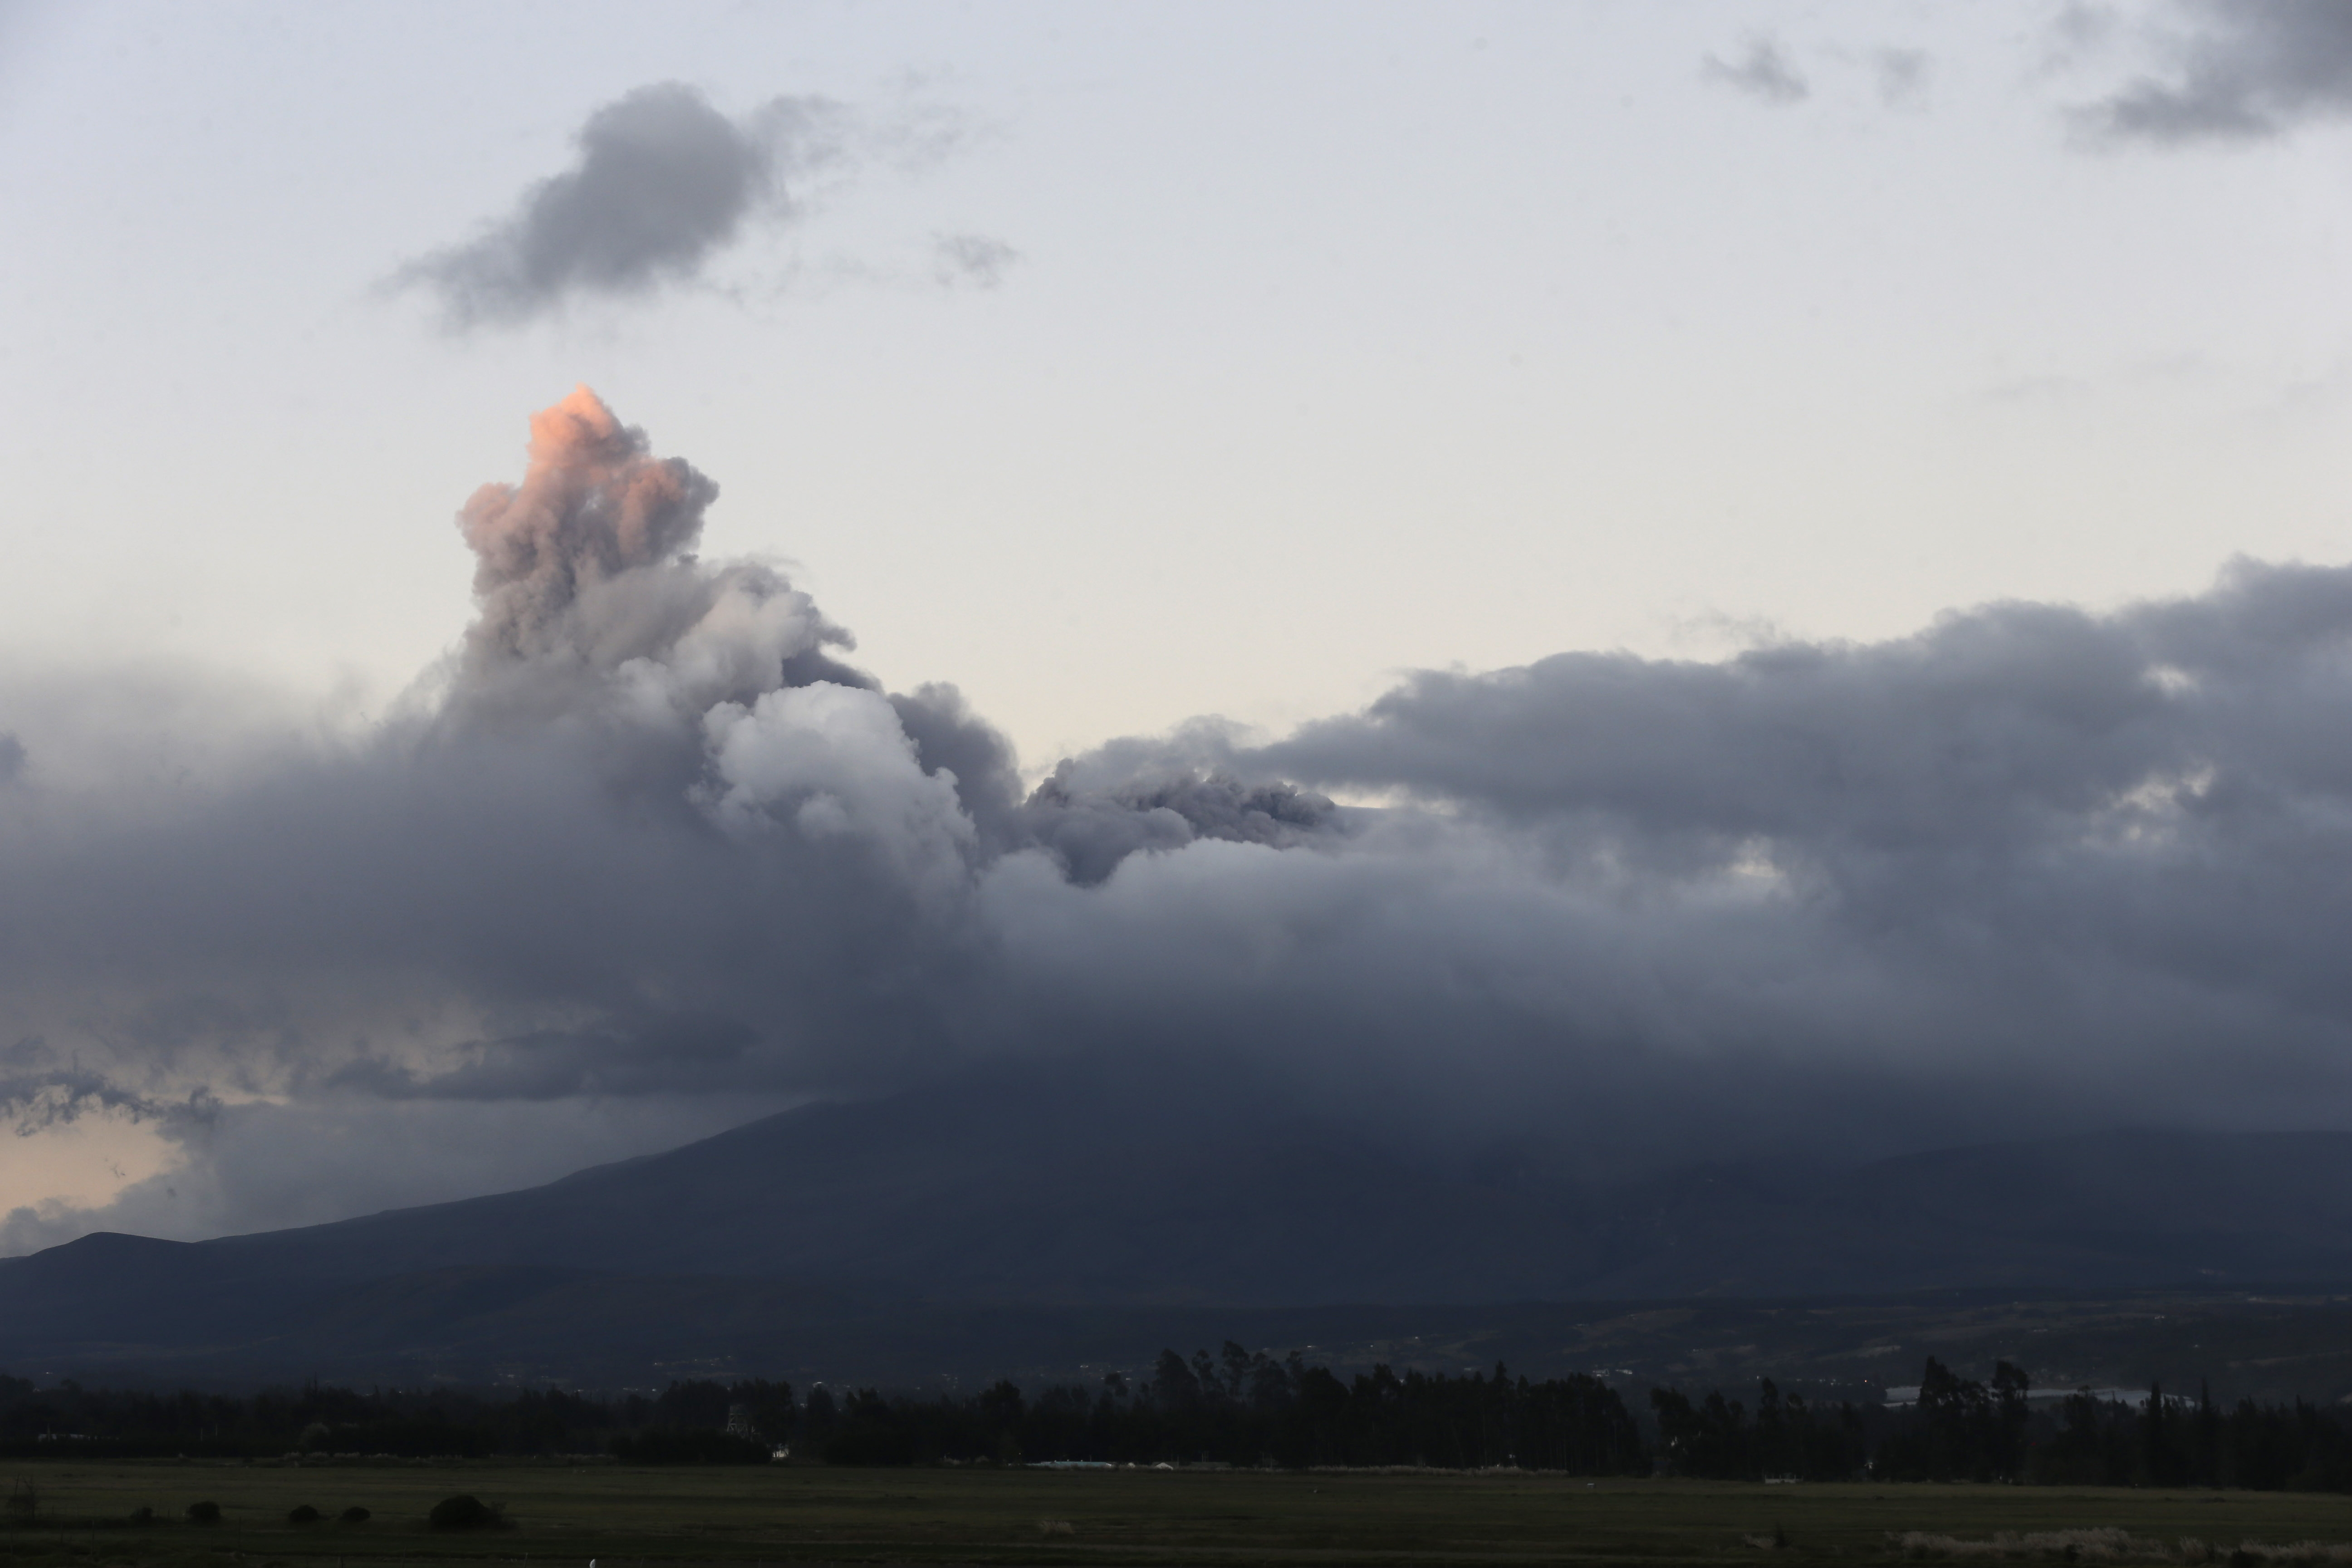 A view of Cotopaxi volcano spewing ashes as seen from Latacunga, Ecuador on Aug. 15, 2015.